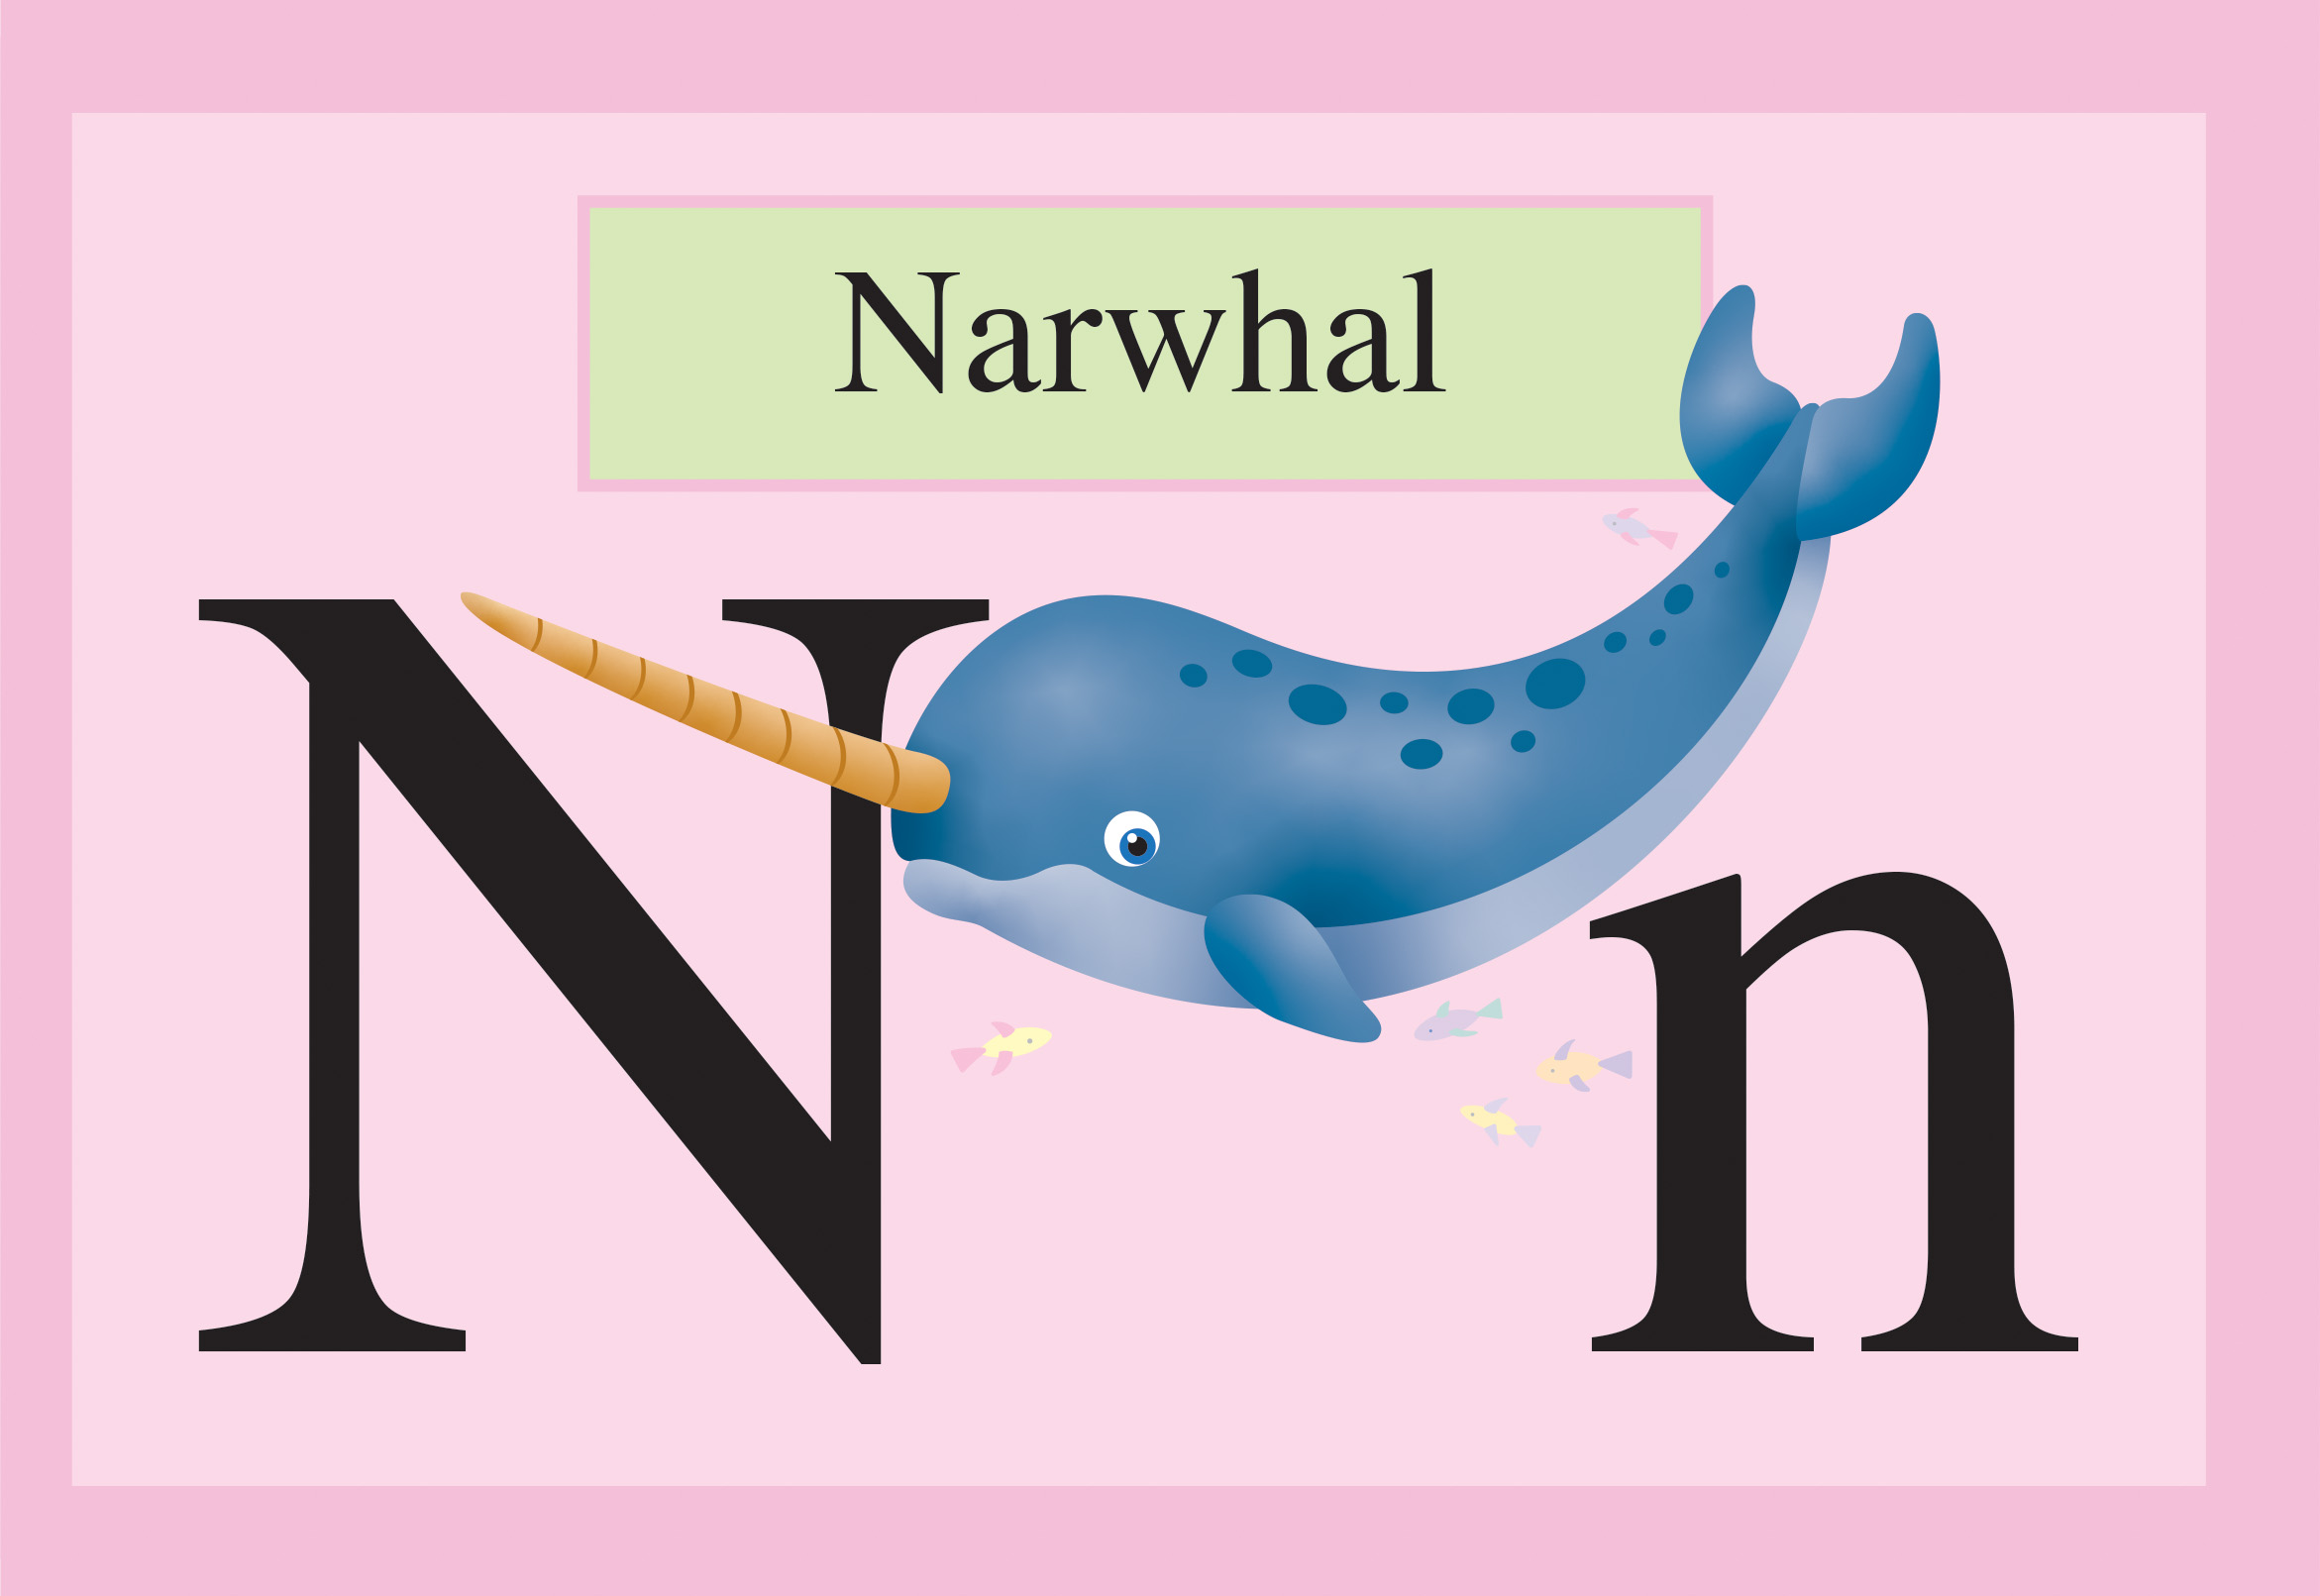 slide 4 Educational Childrens Stories - ANIMALBET! A to Z, by Bonnie Lady Lee and Peter Zafris. [Excerpt] N is for narwhal.